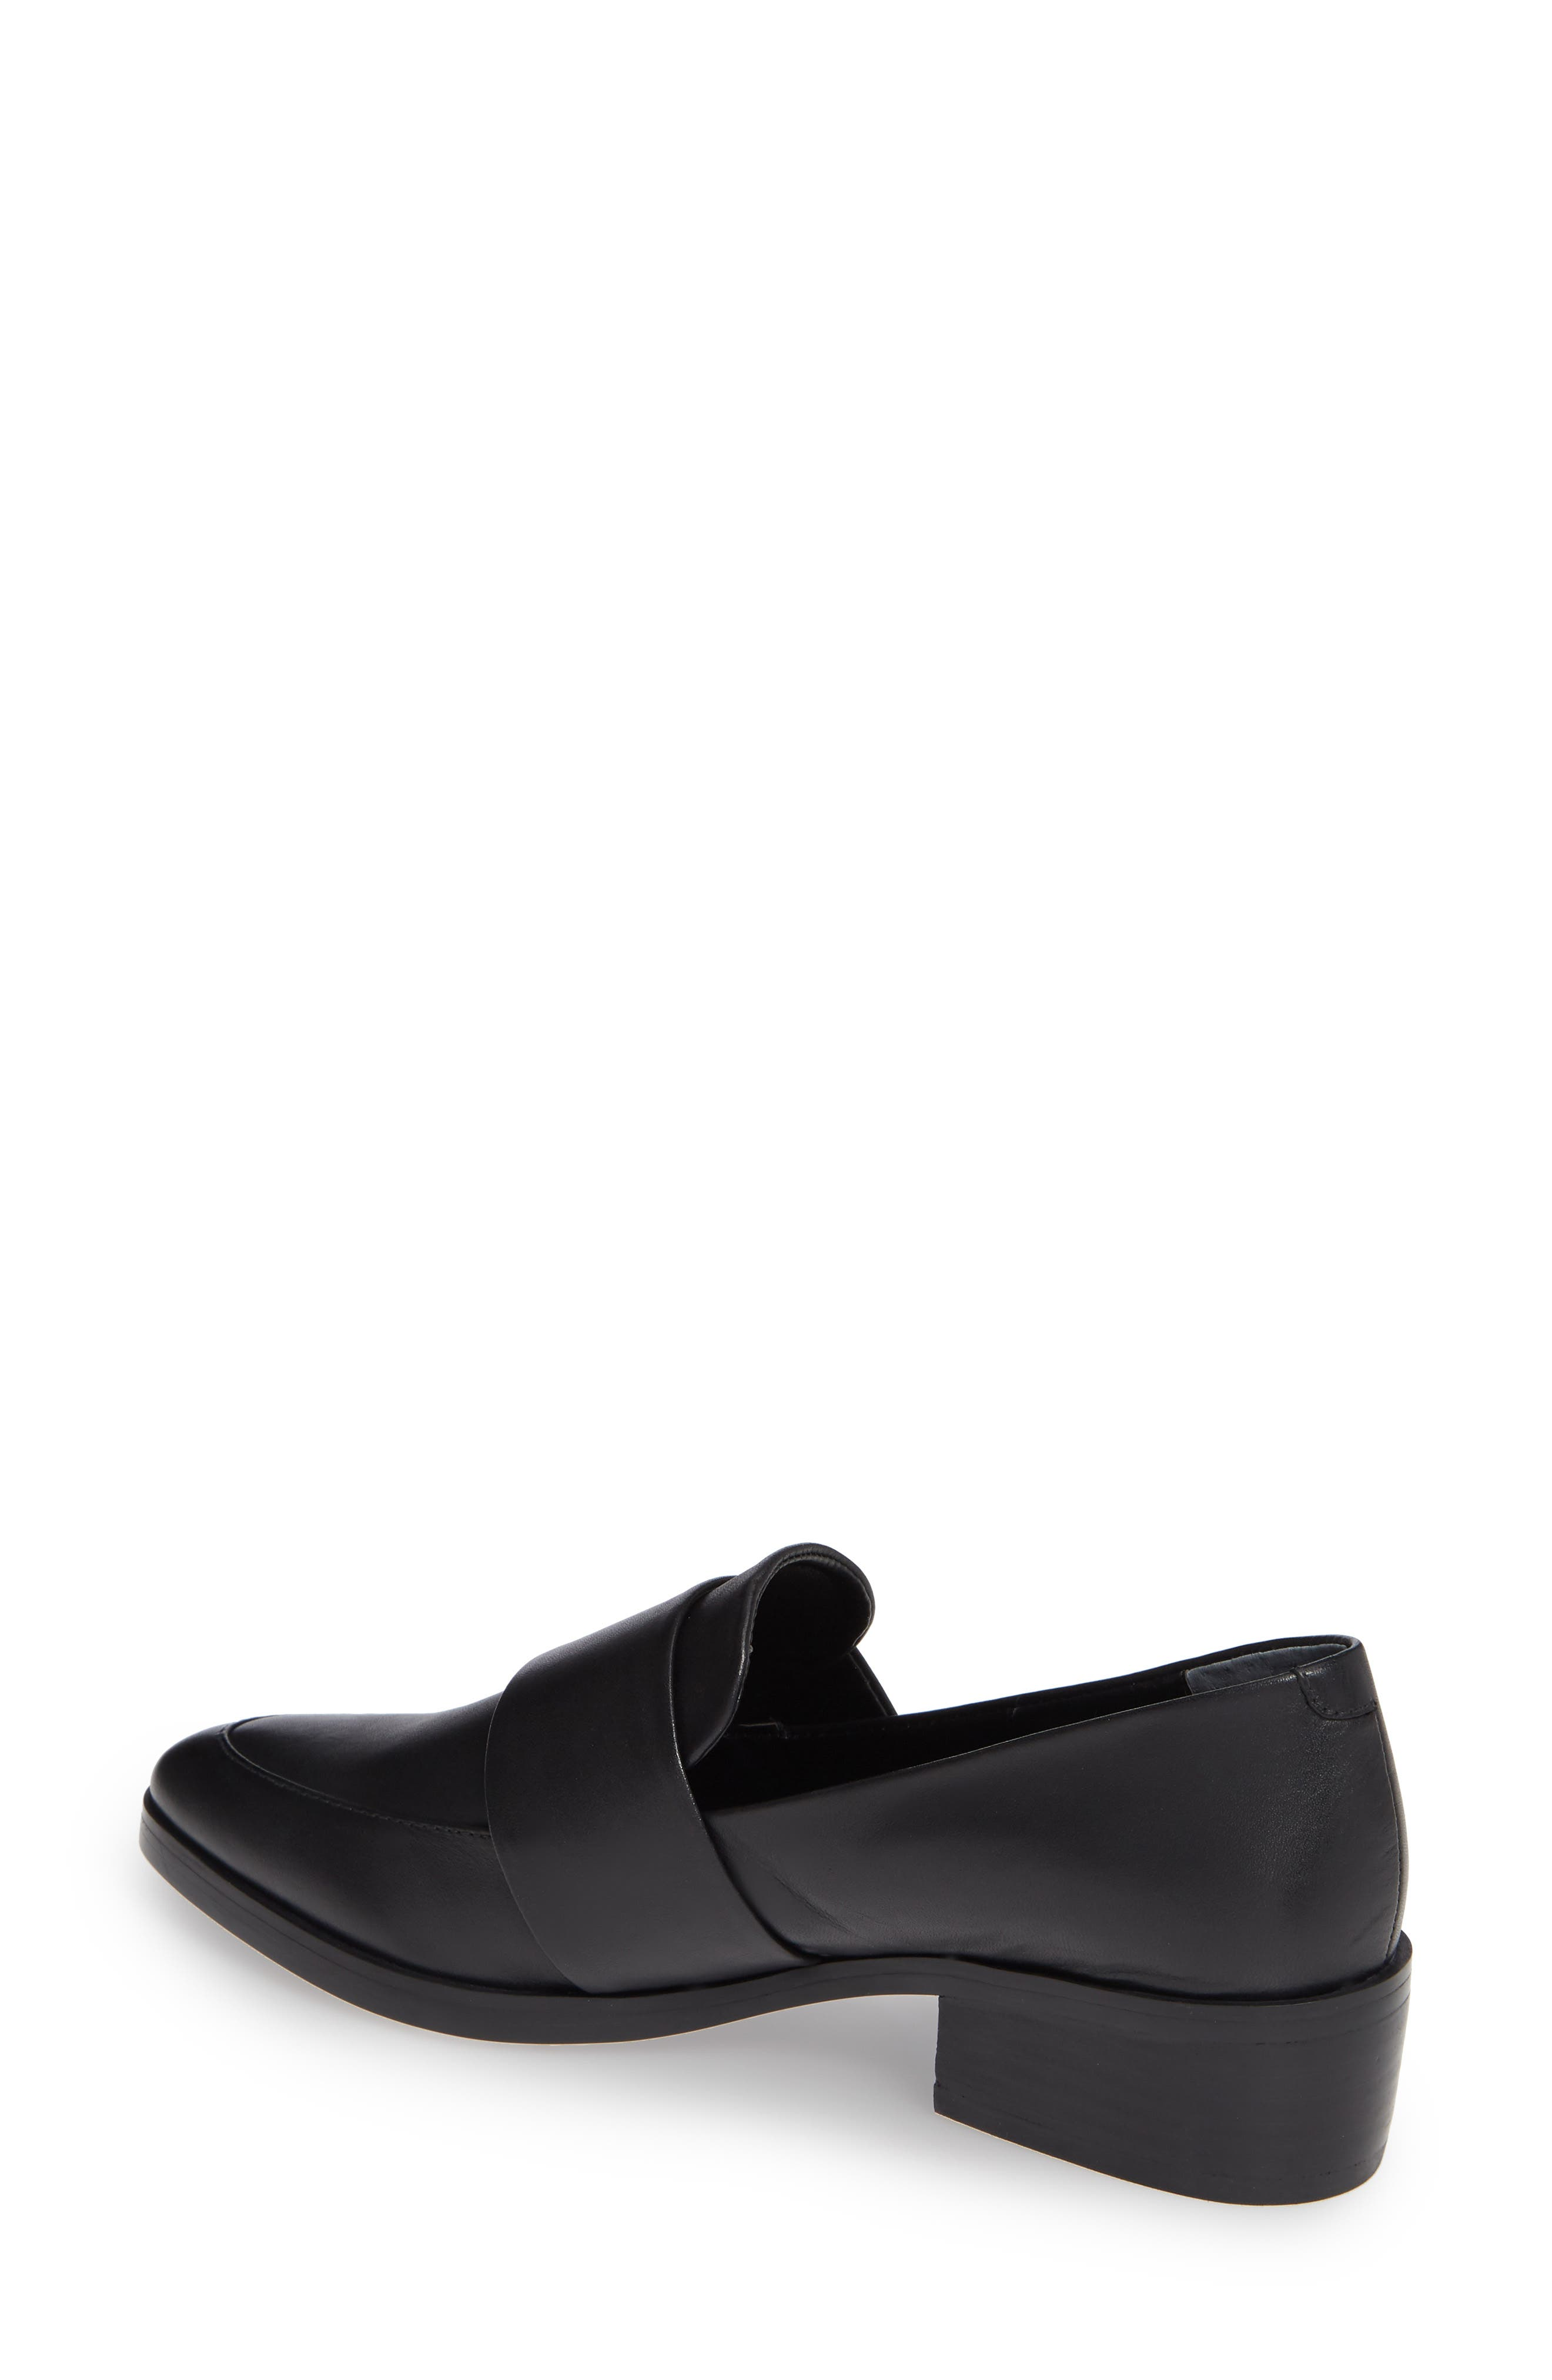 TONY BIANCO, Mayfair Loafer, Alternate thumbnail 2, color, BLACK LEATHER